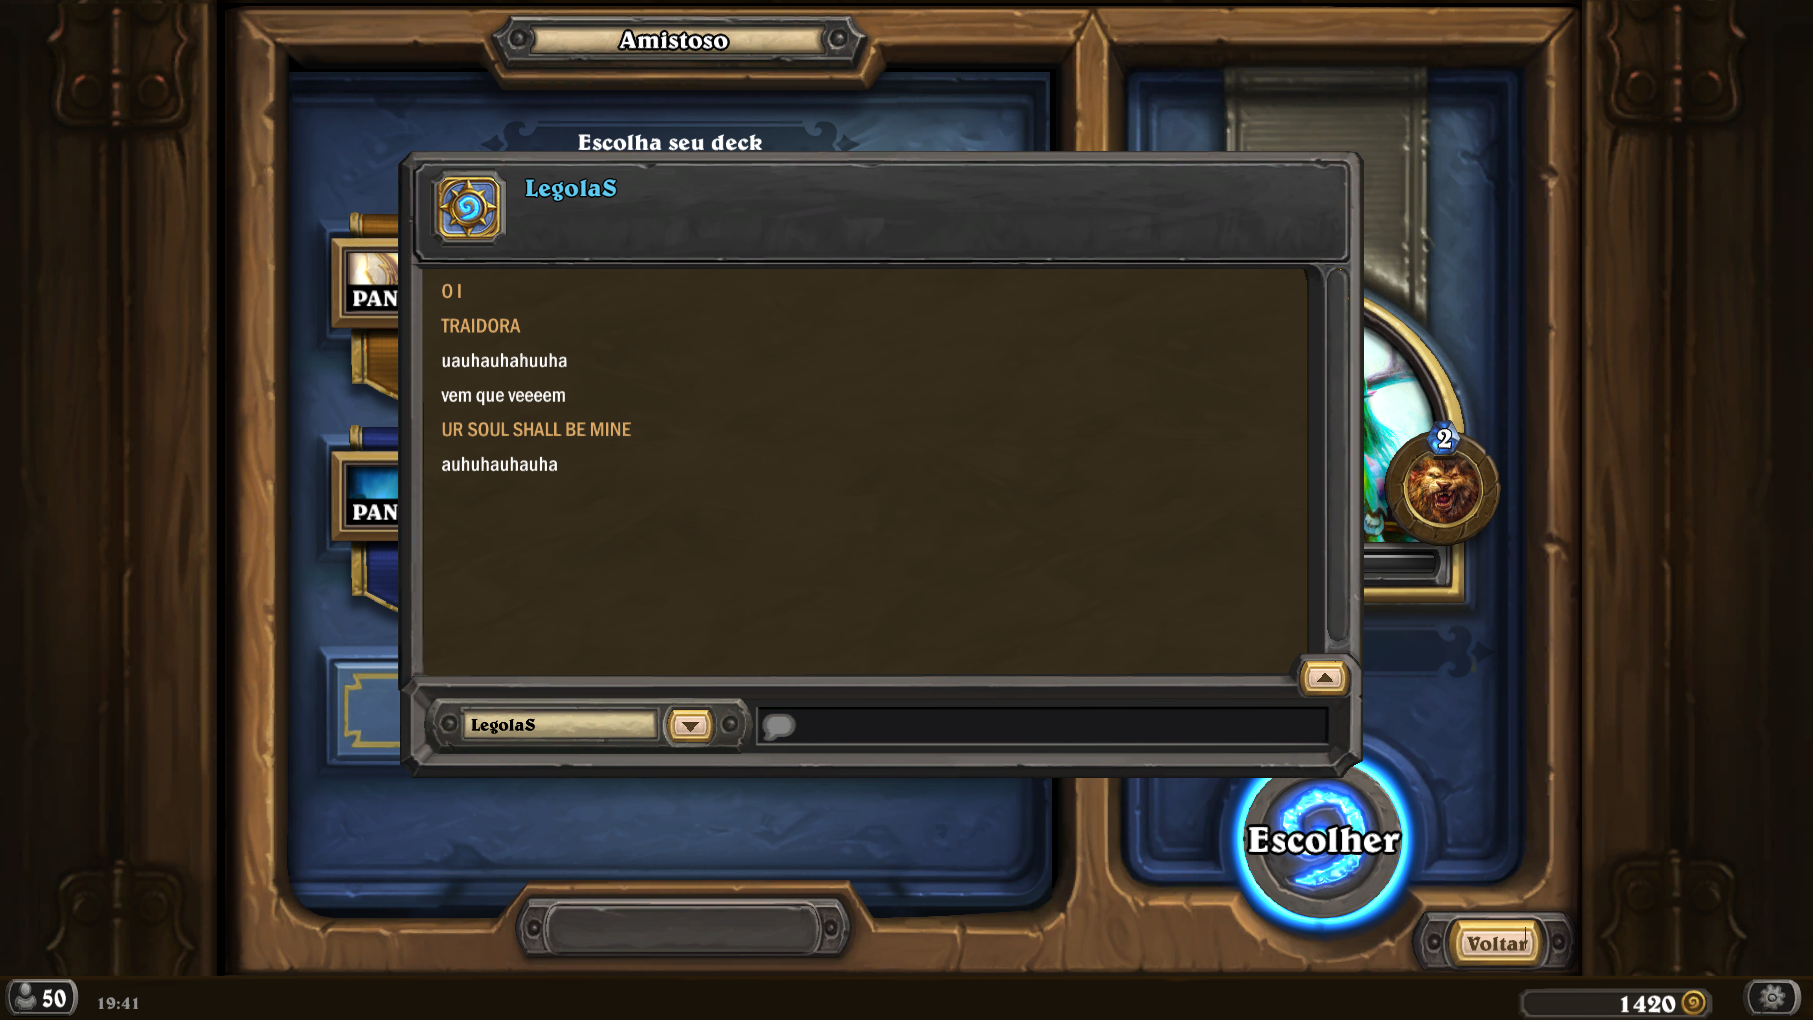 Hearthstone Screenshot 04-10-16 19.41.54